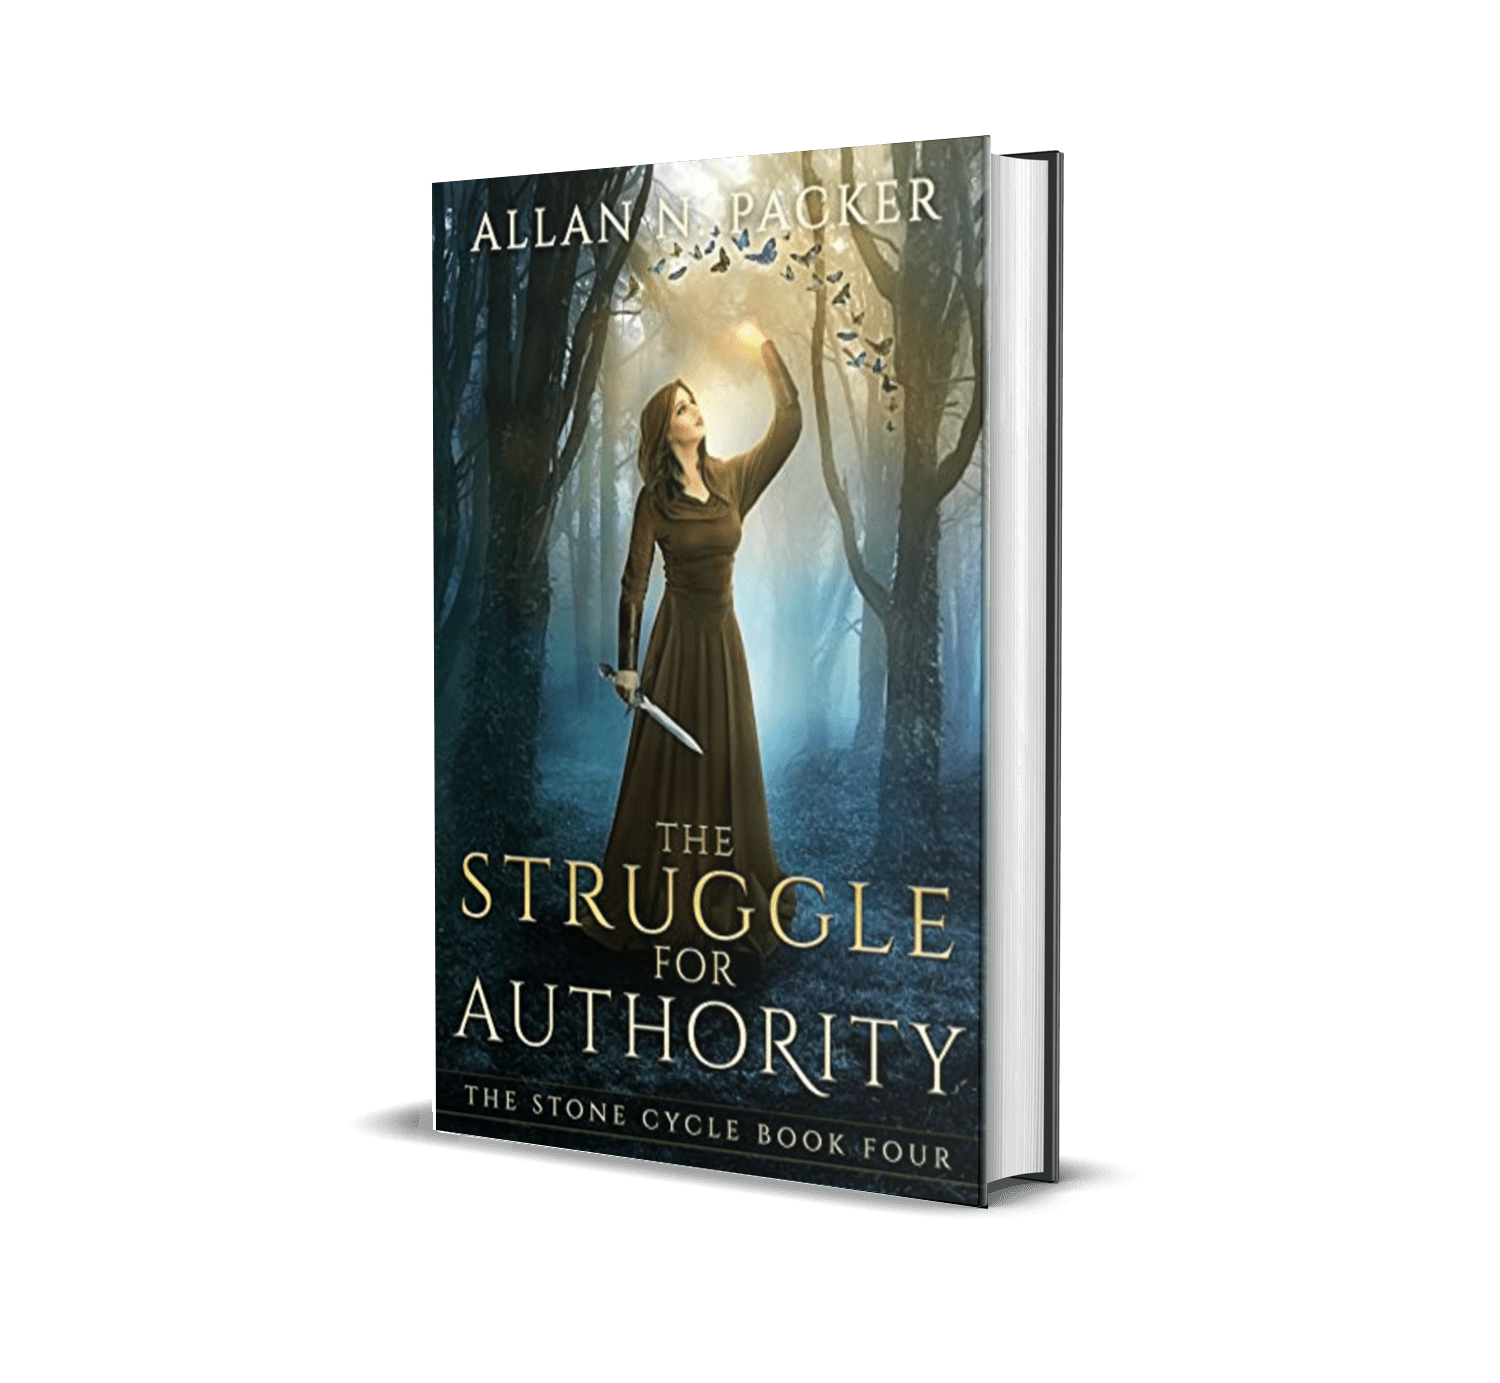 The Struggle for Authority